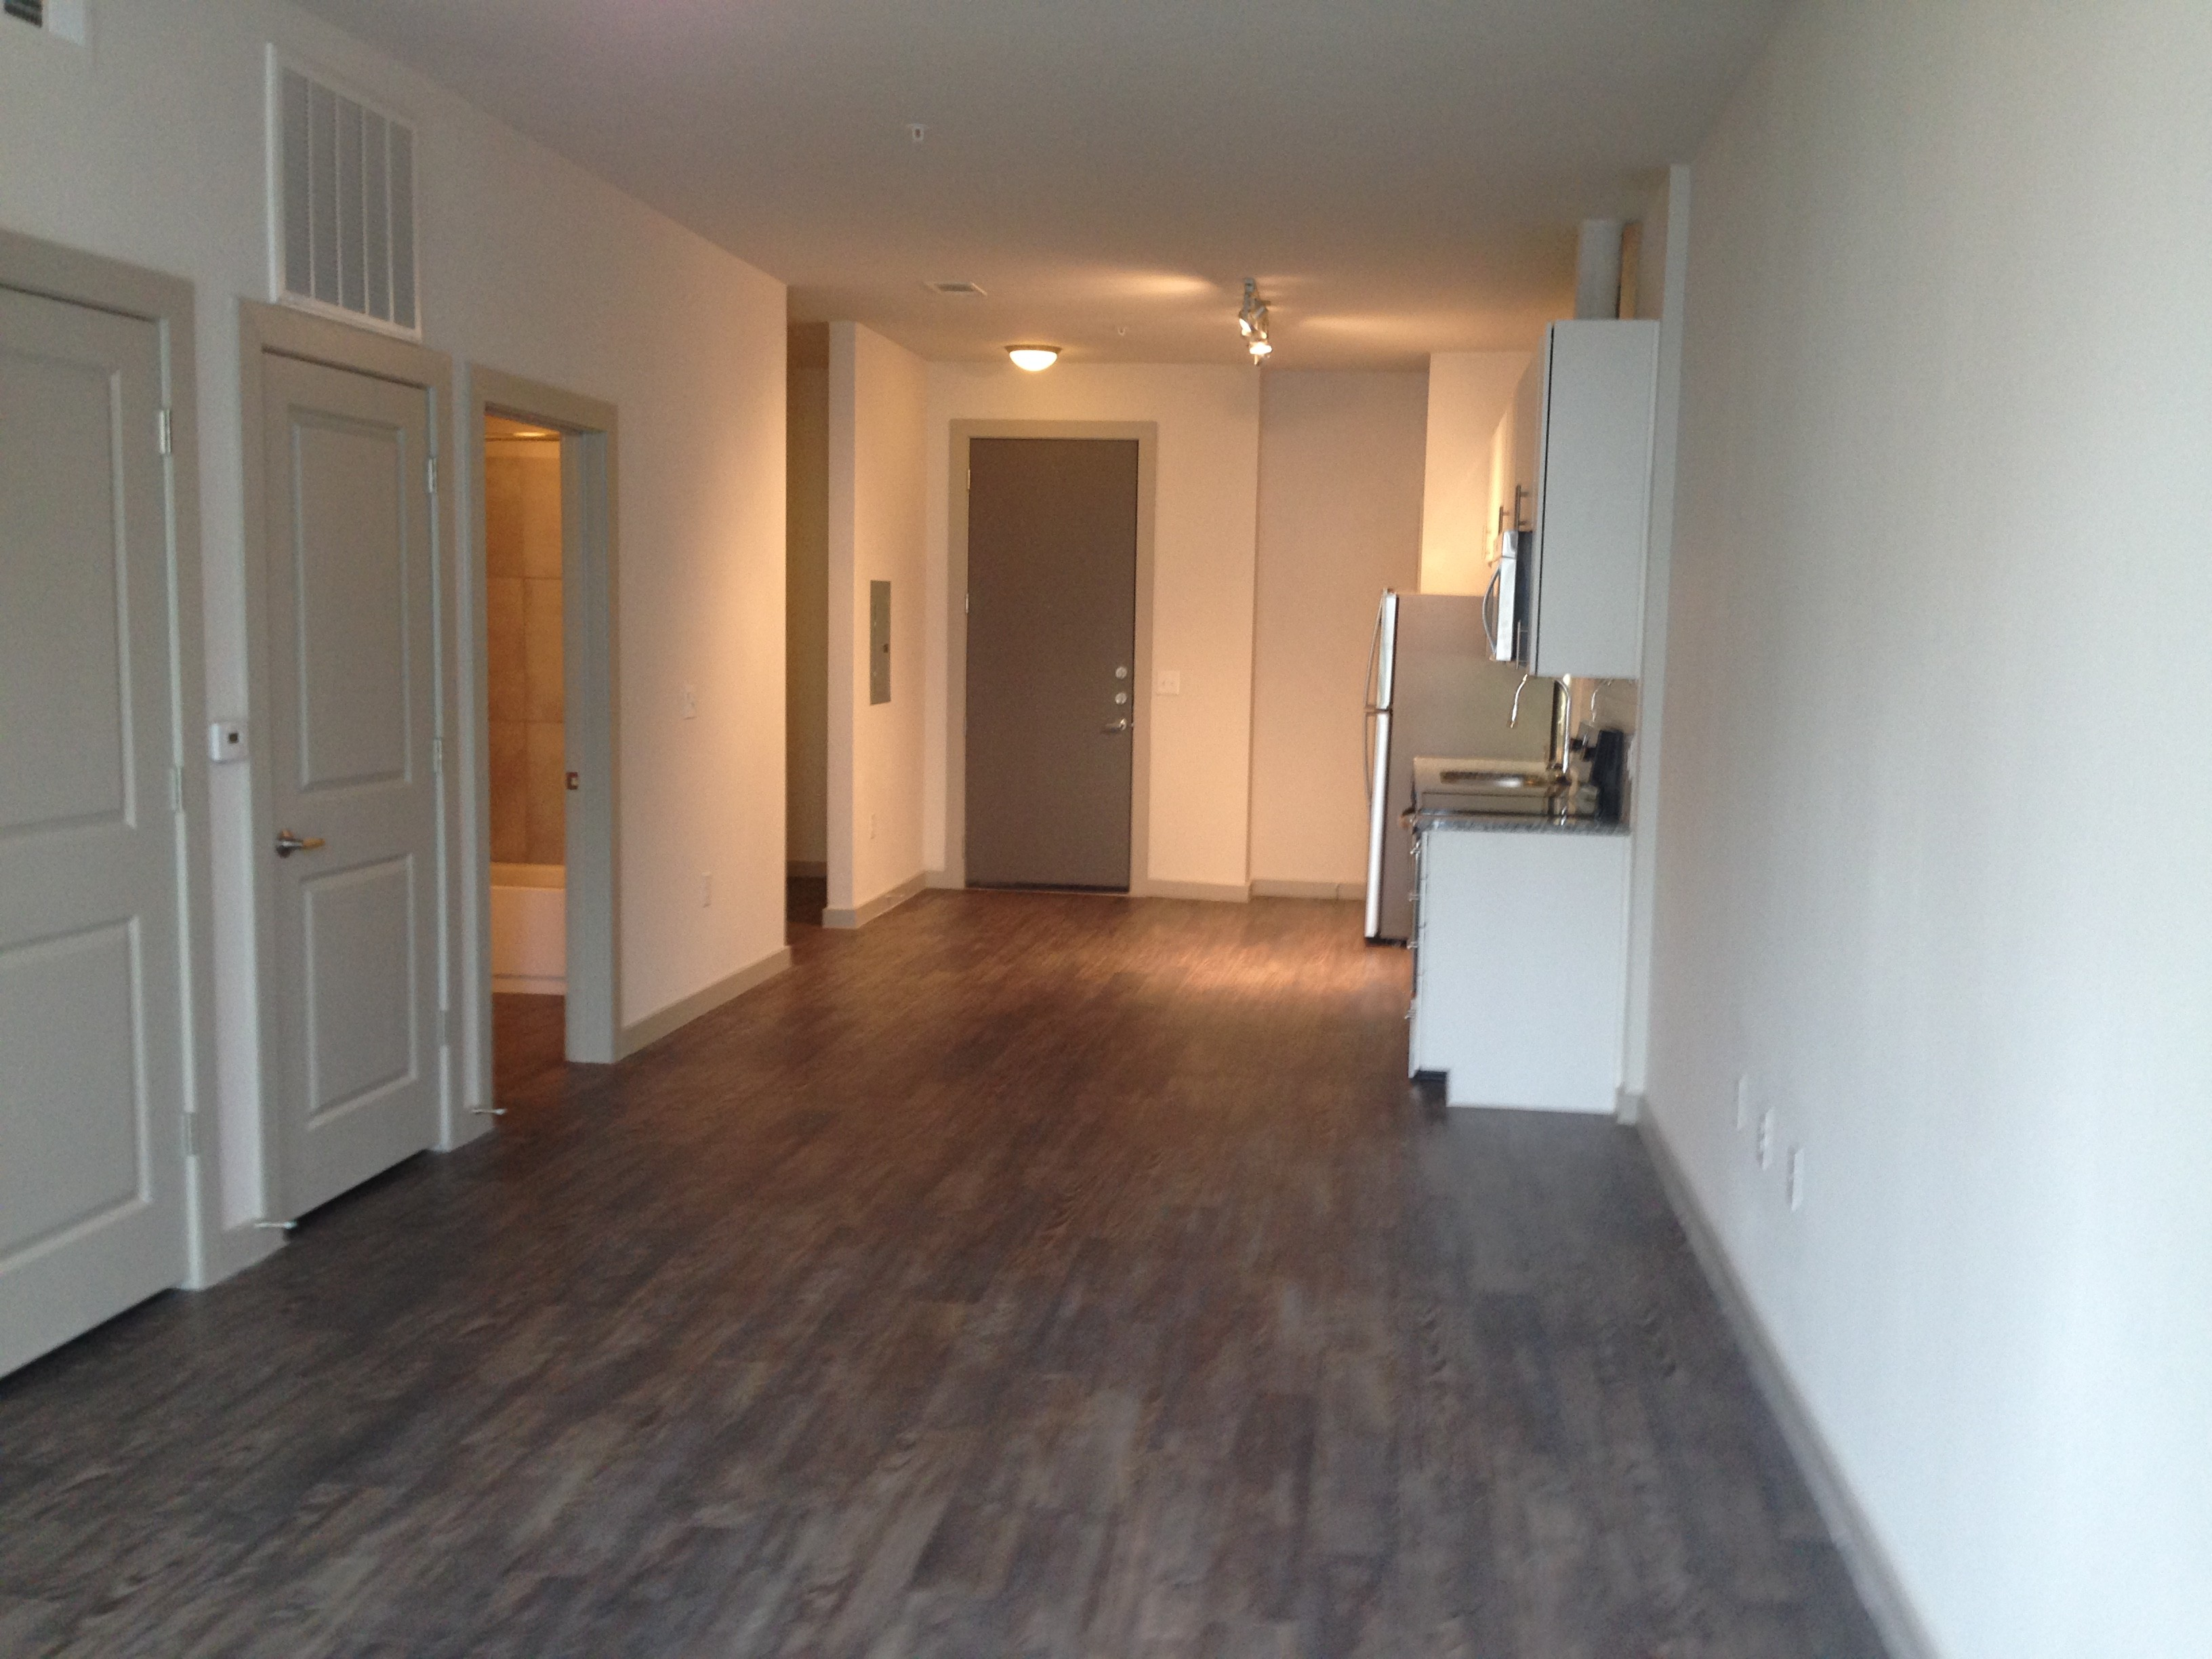 1000 E 7th St Austin Tx 78702 2 Bedroom Apartment For Rent For 1 965 Month Zumper